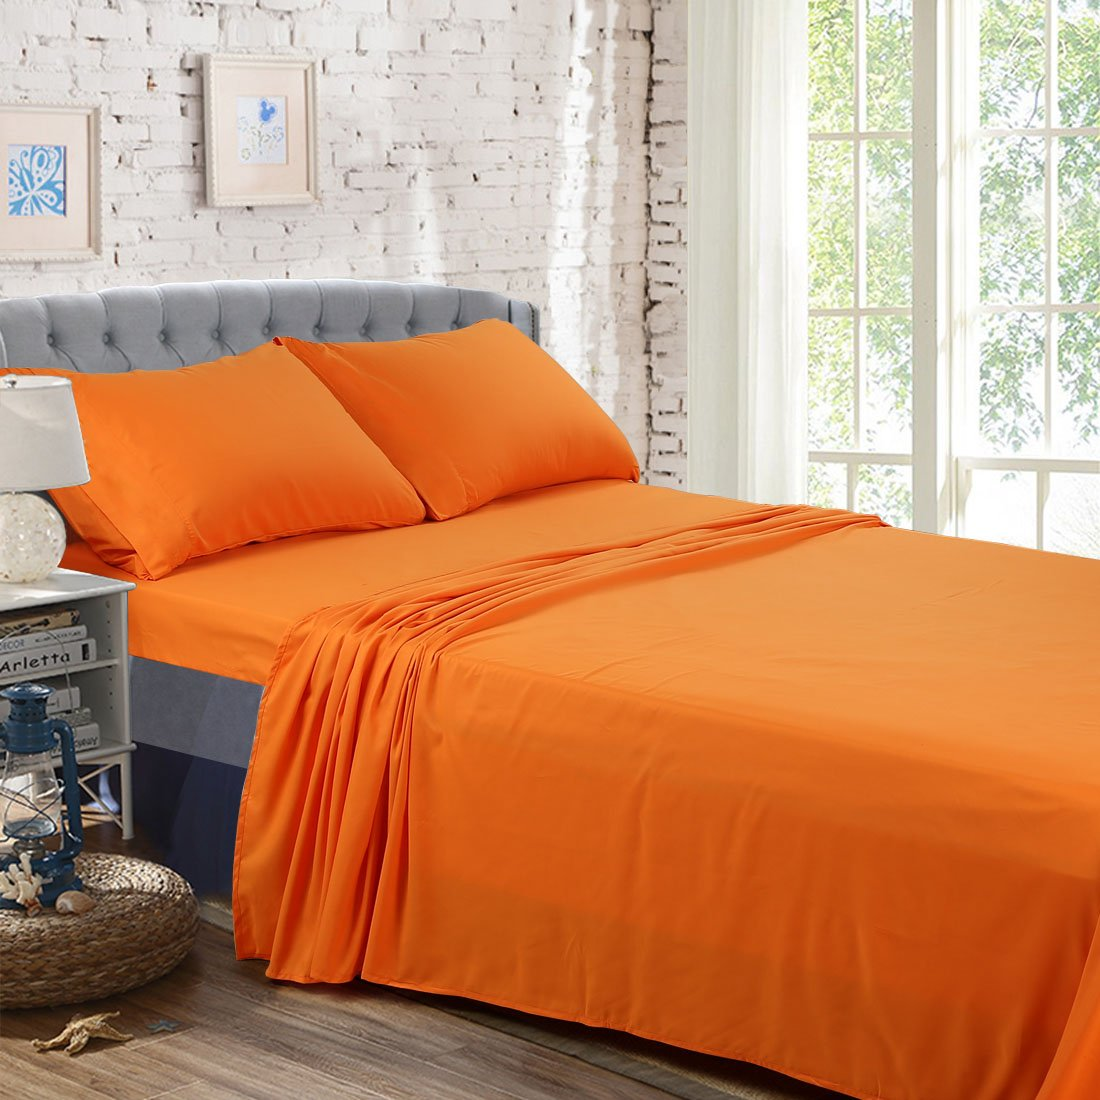 Discover our great selection of Fitted Bed Sheets on puraconga.ml Over 7, Fitted Bed Sheets Great Selection & Price Free Shipping on Prime eligible orders.